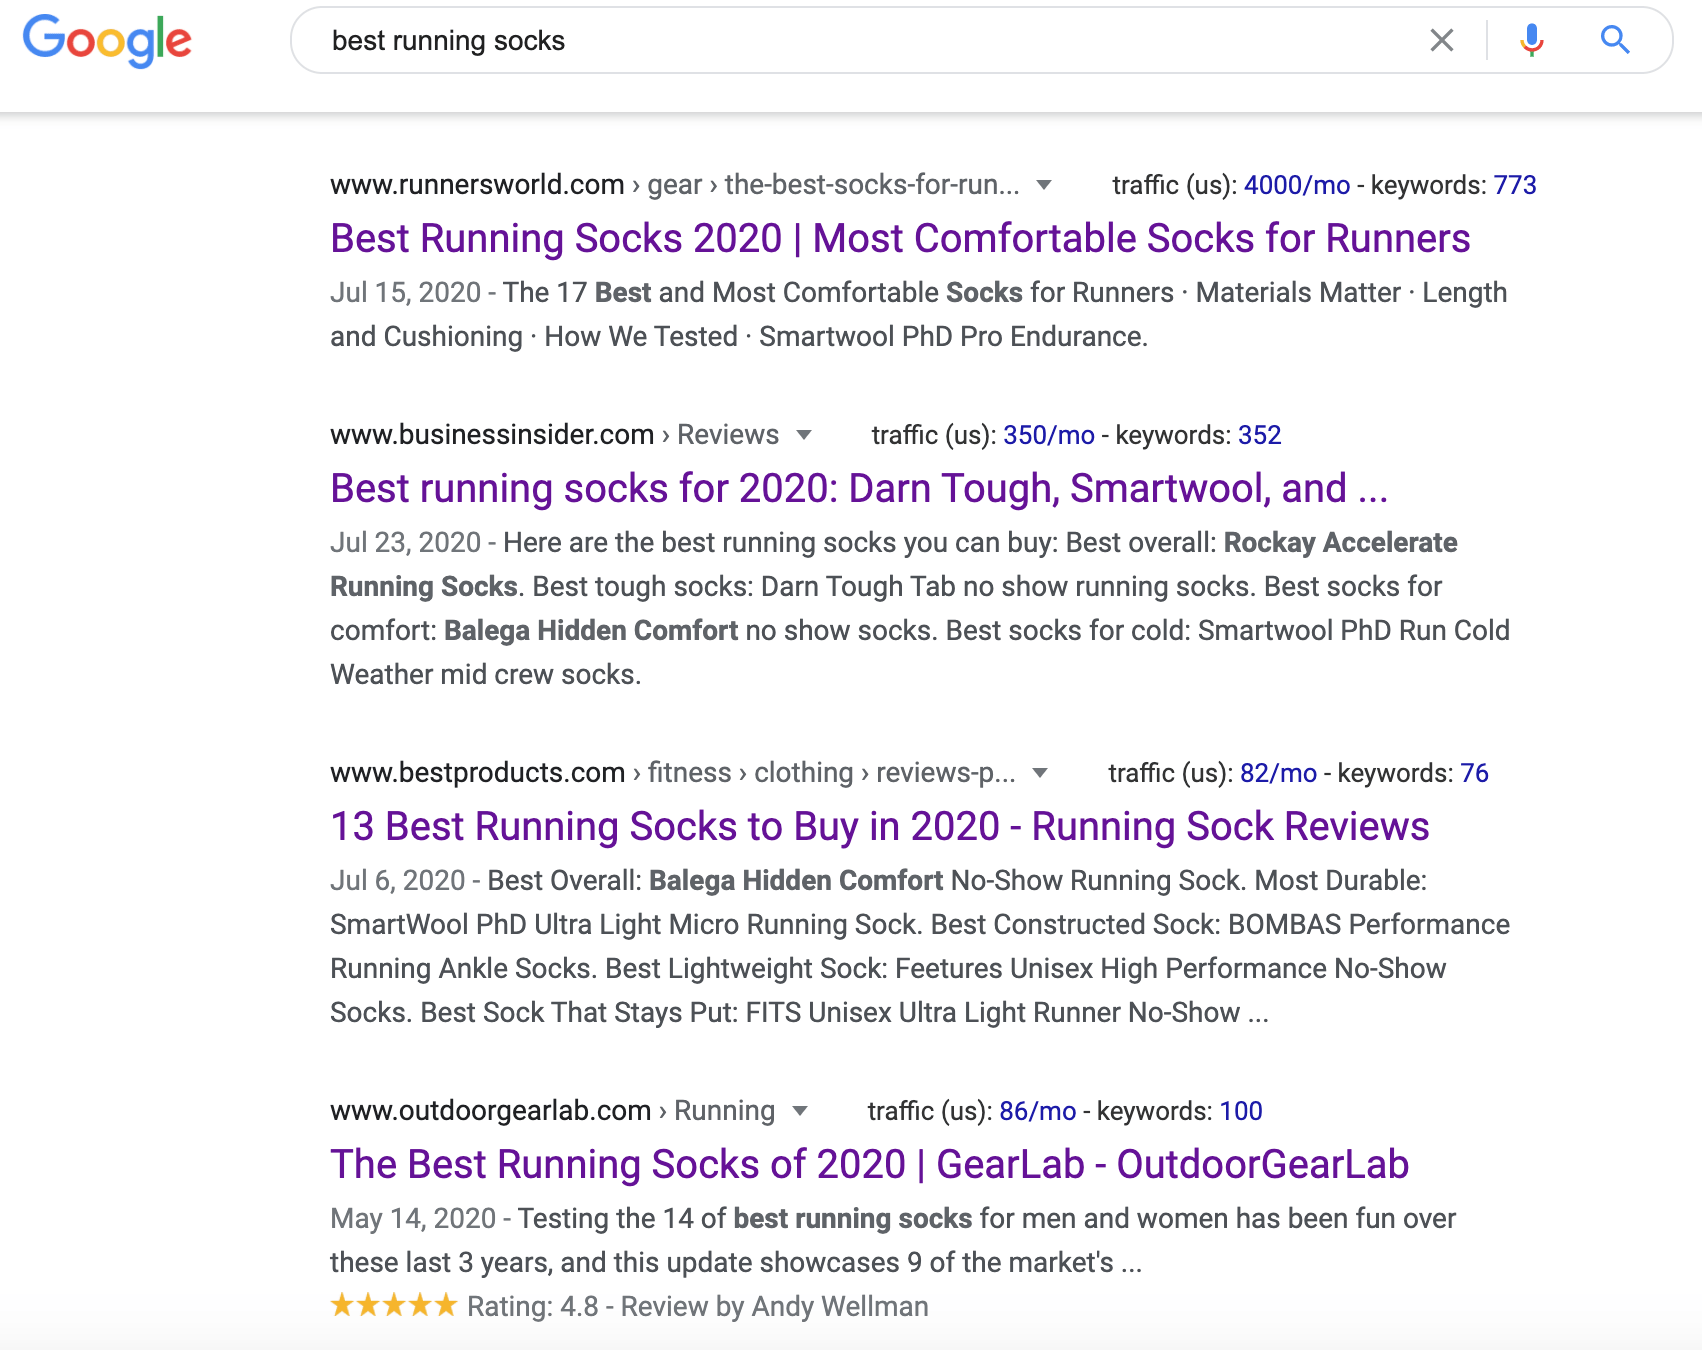 Image of Google Search for Best Running Socks